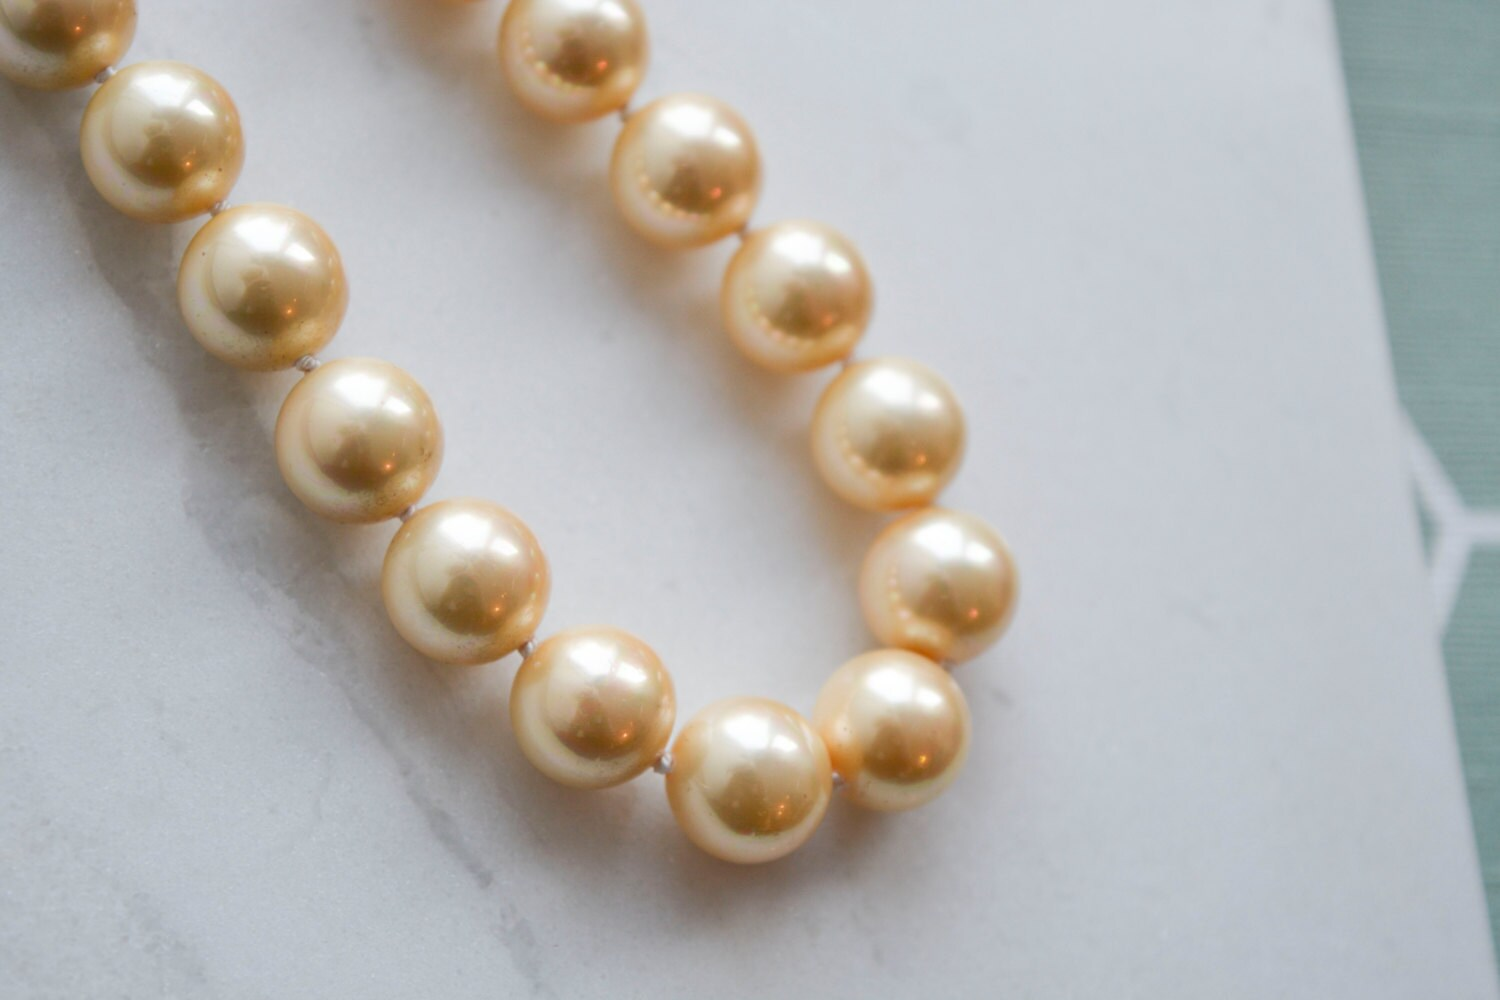 pearls web pastel co product art used designer colored pearl necklace